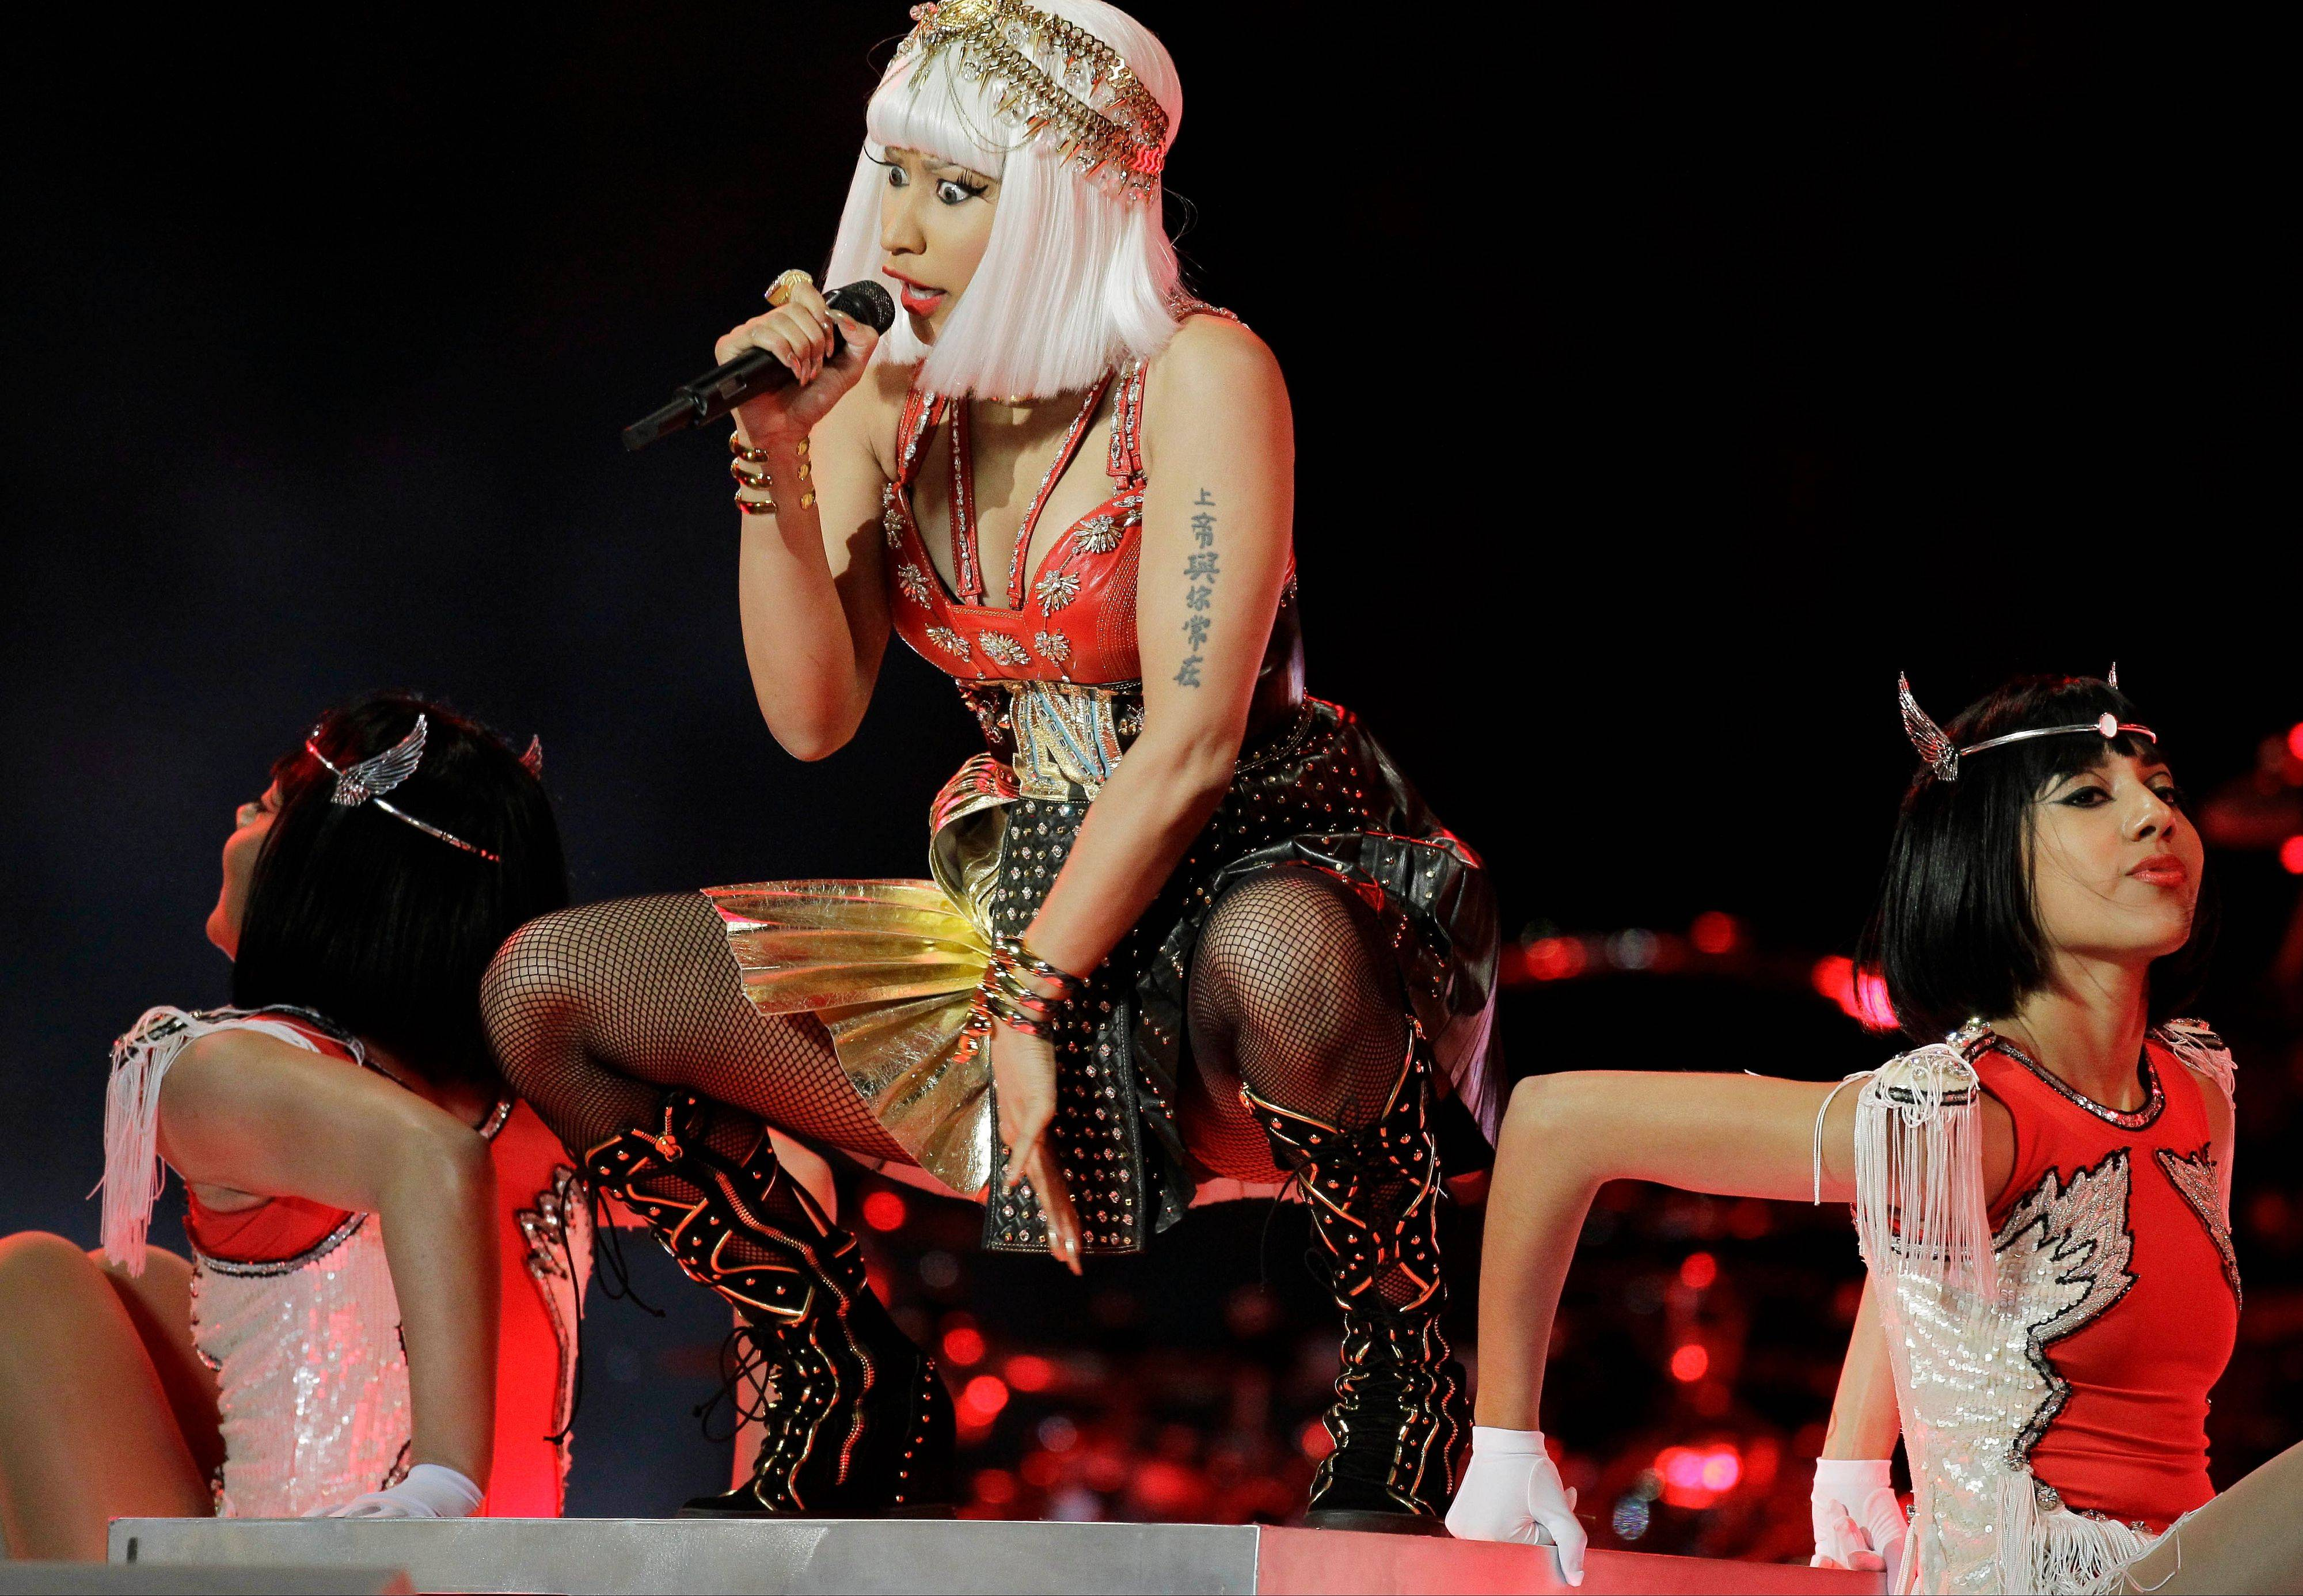 Nicki Minaj performs as part of Madonna's halftime show.